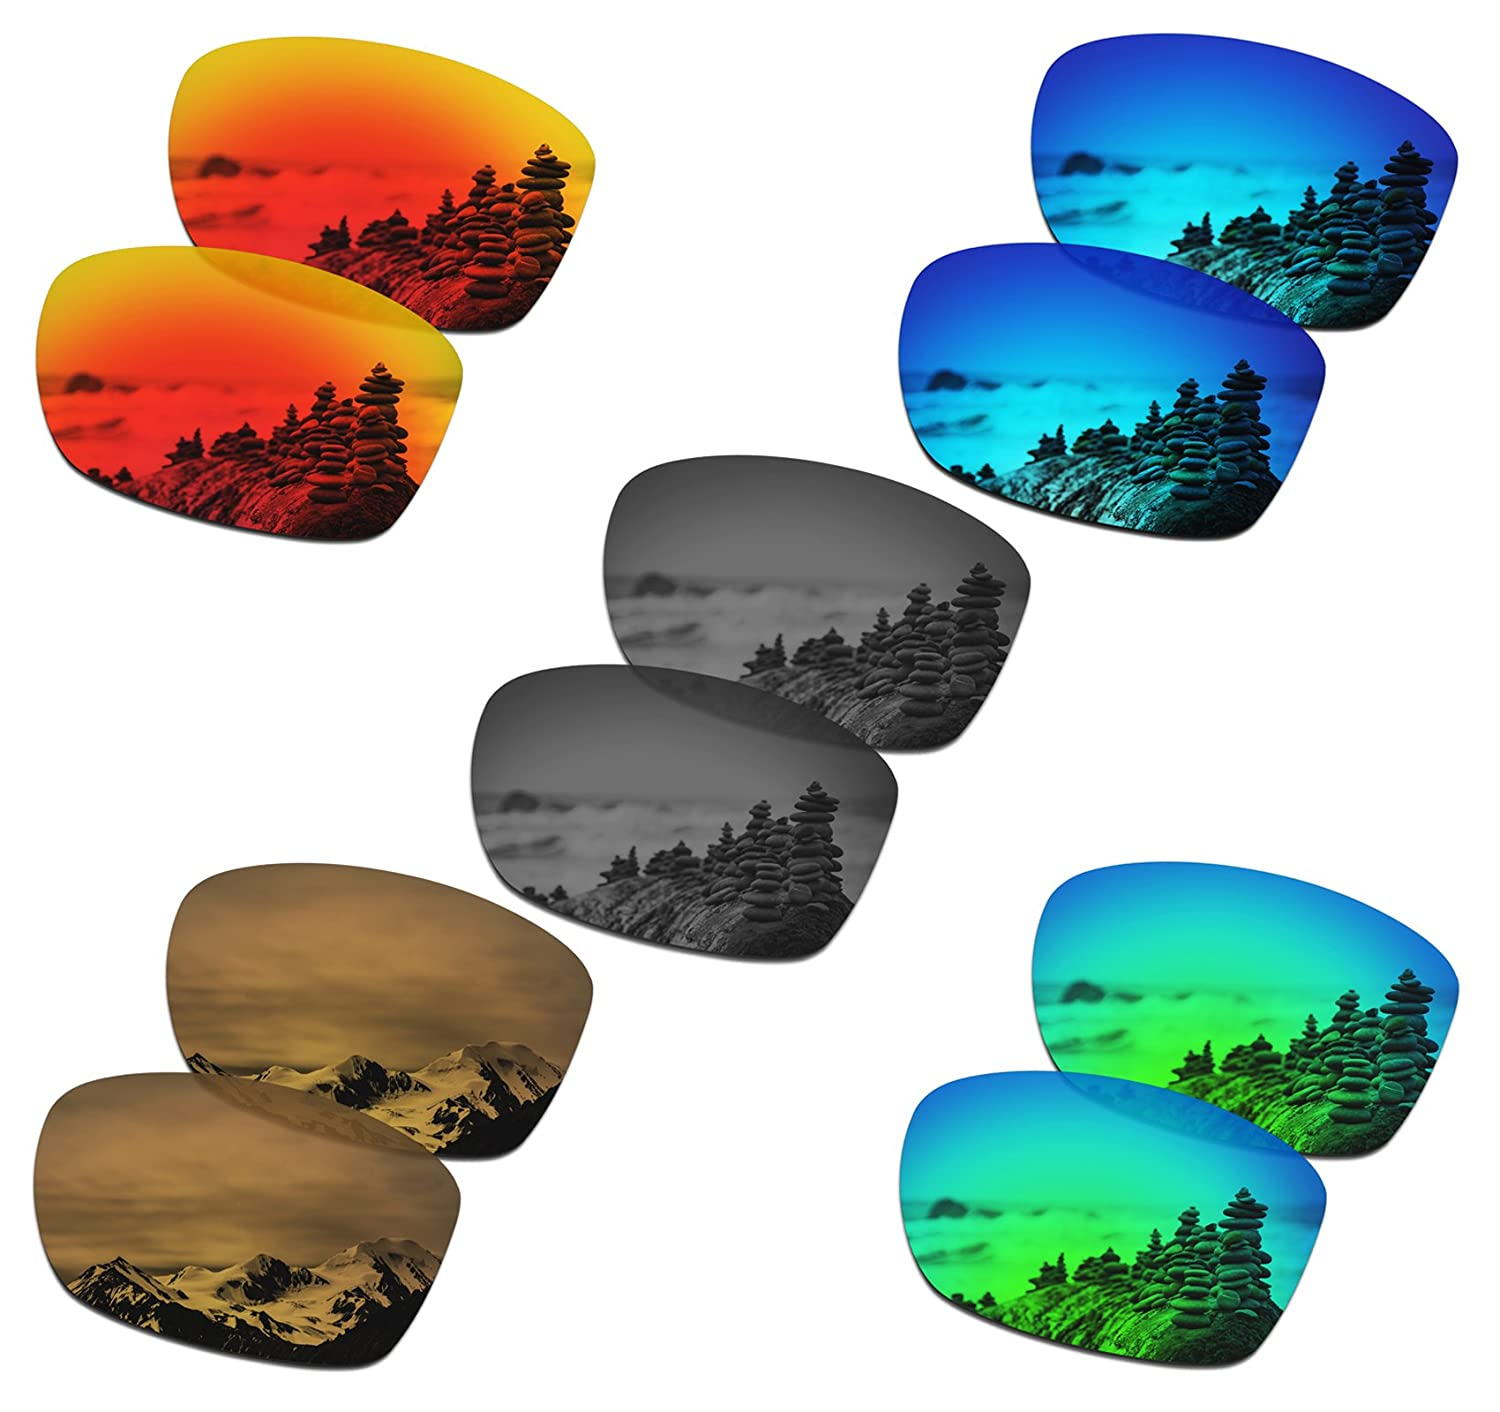 aa8562e8336 Amazon.com  SmartVLT Set of 5 Men s Replacement Lenses for Oakley Jupiter  Squared Sunglass Combo Pack S02  Clothing